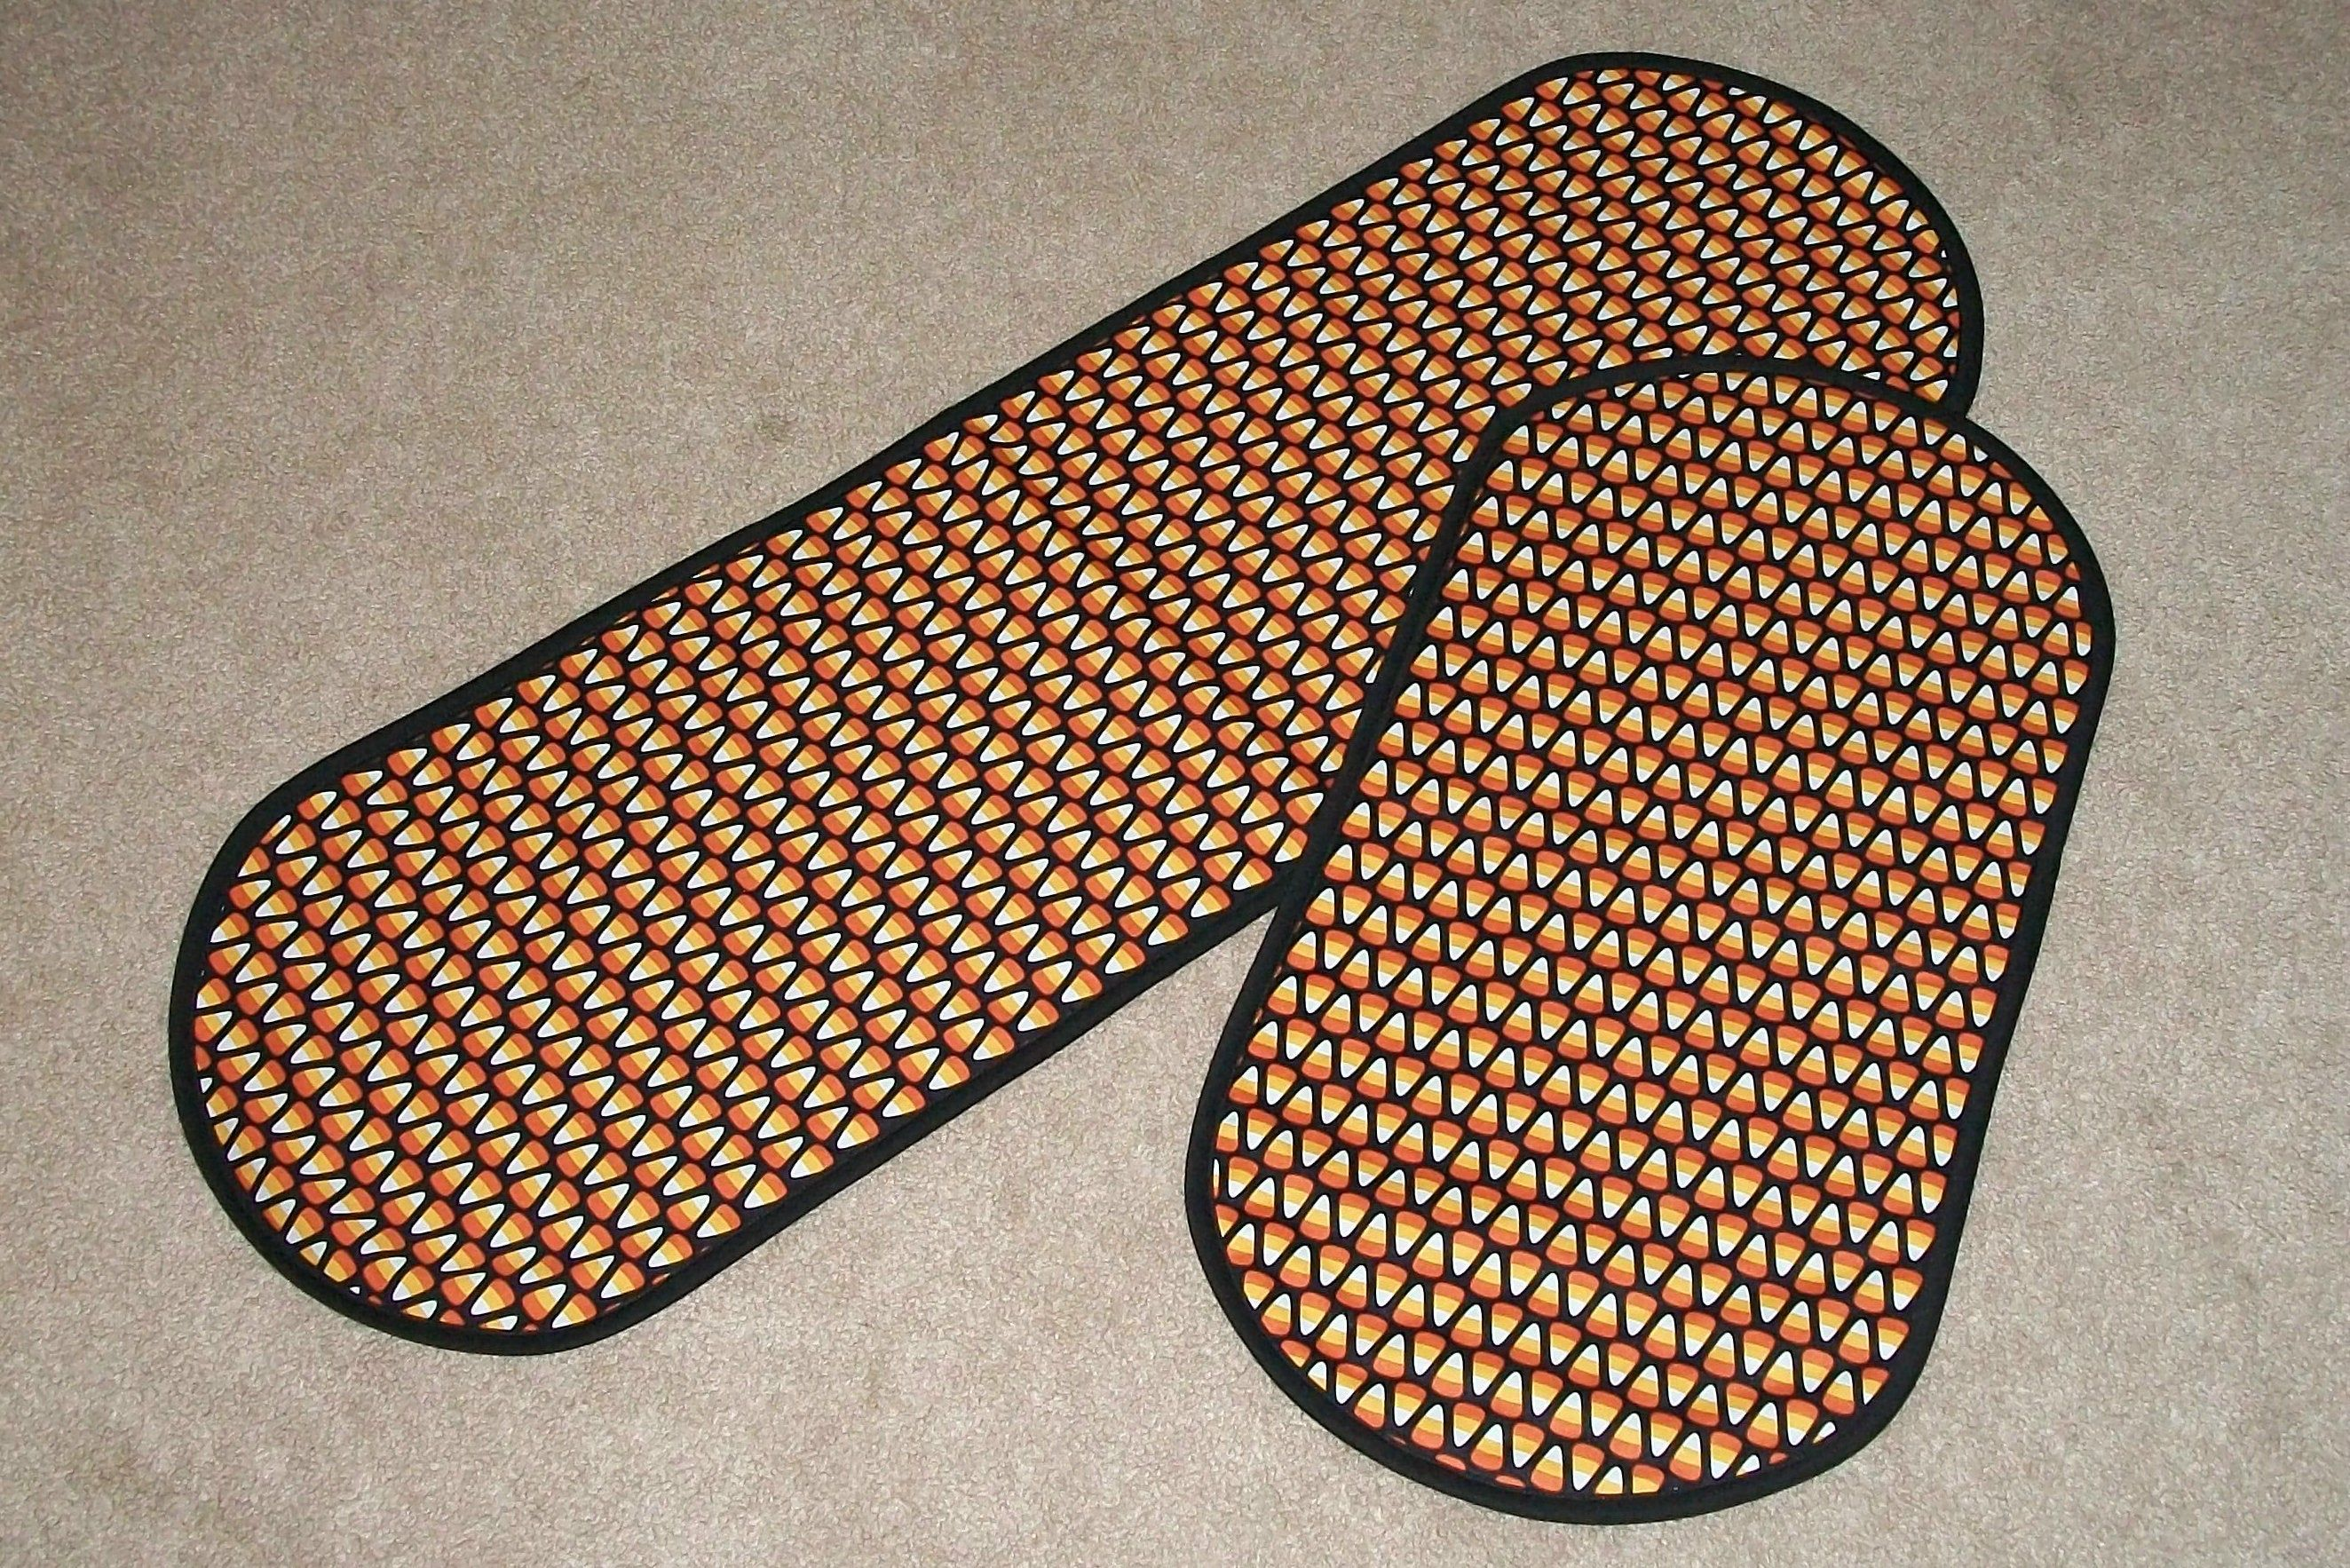 Fireman Firefighter Oval Placemat  Table Mat  Table Topper  Centerpiece  12 x 18 Quilted